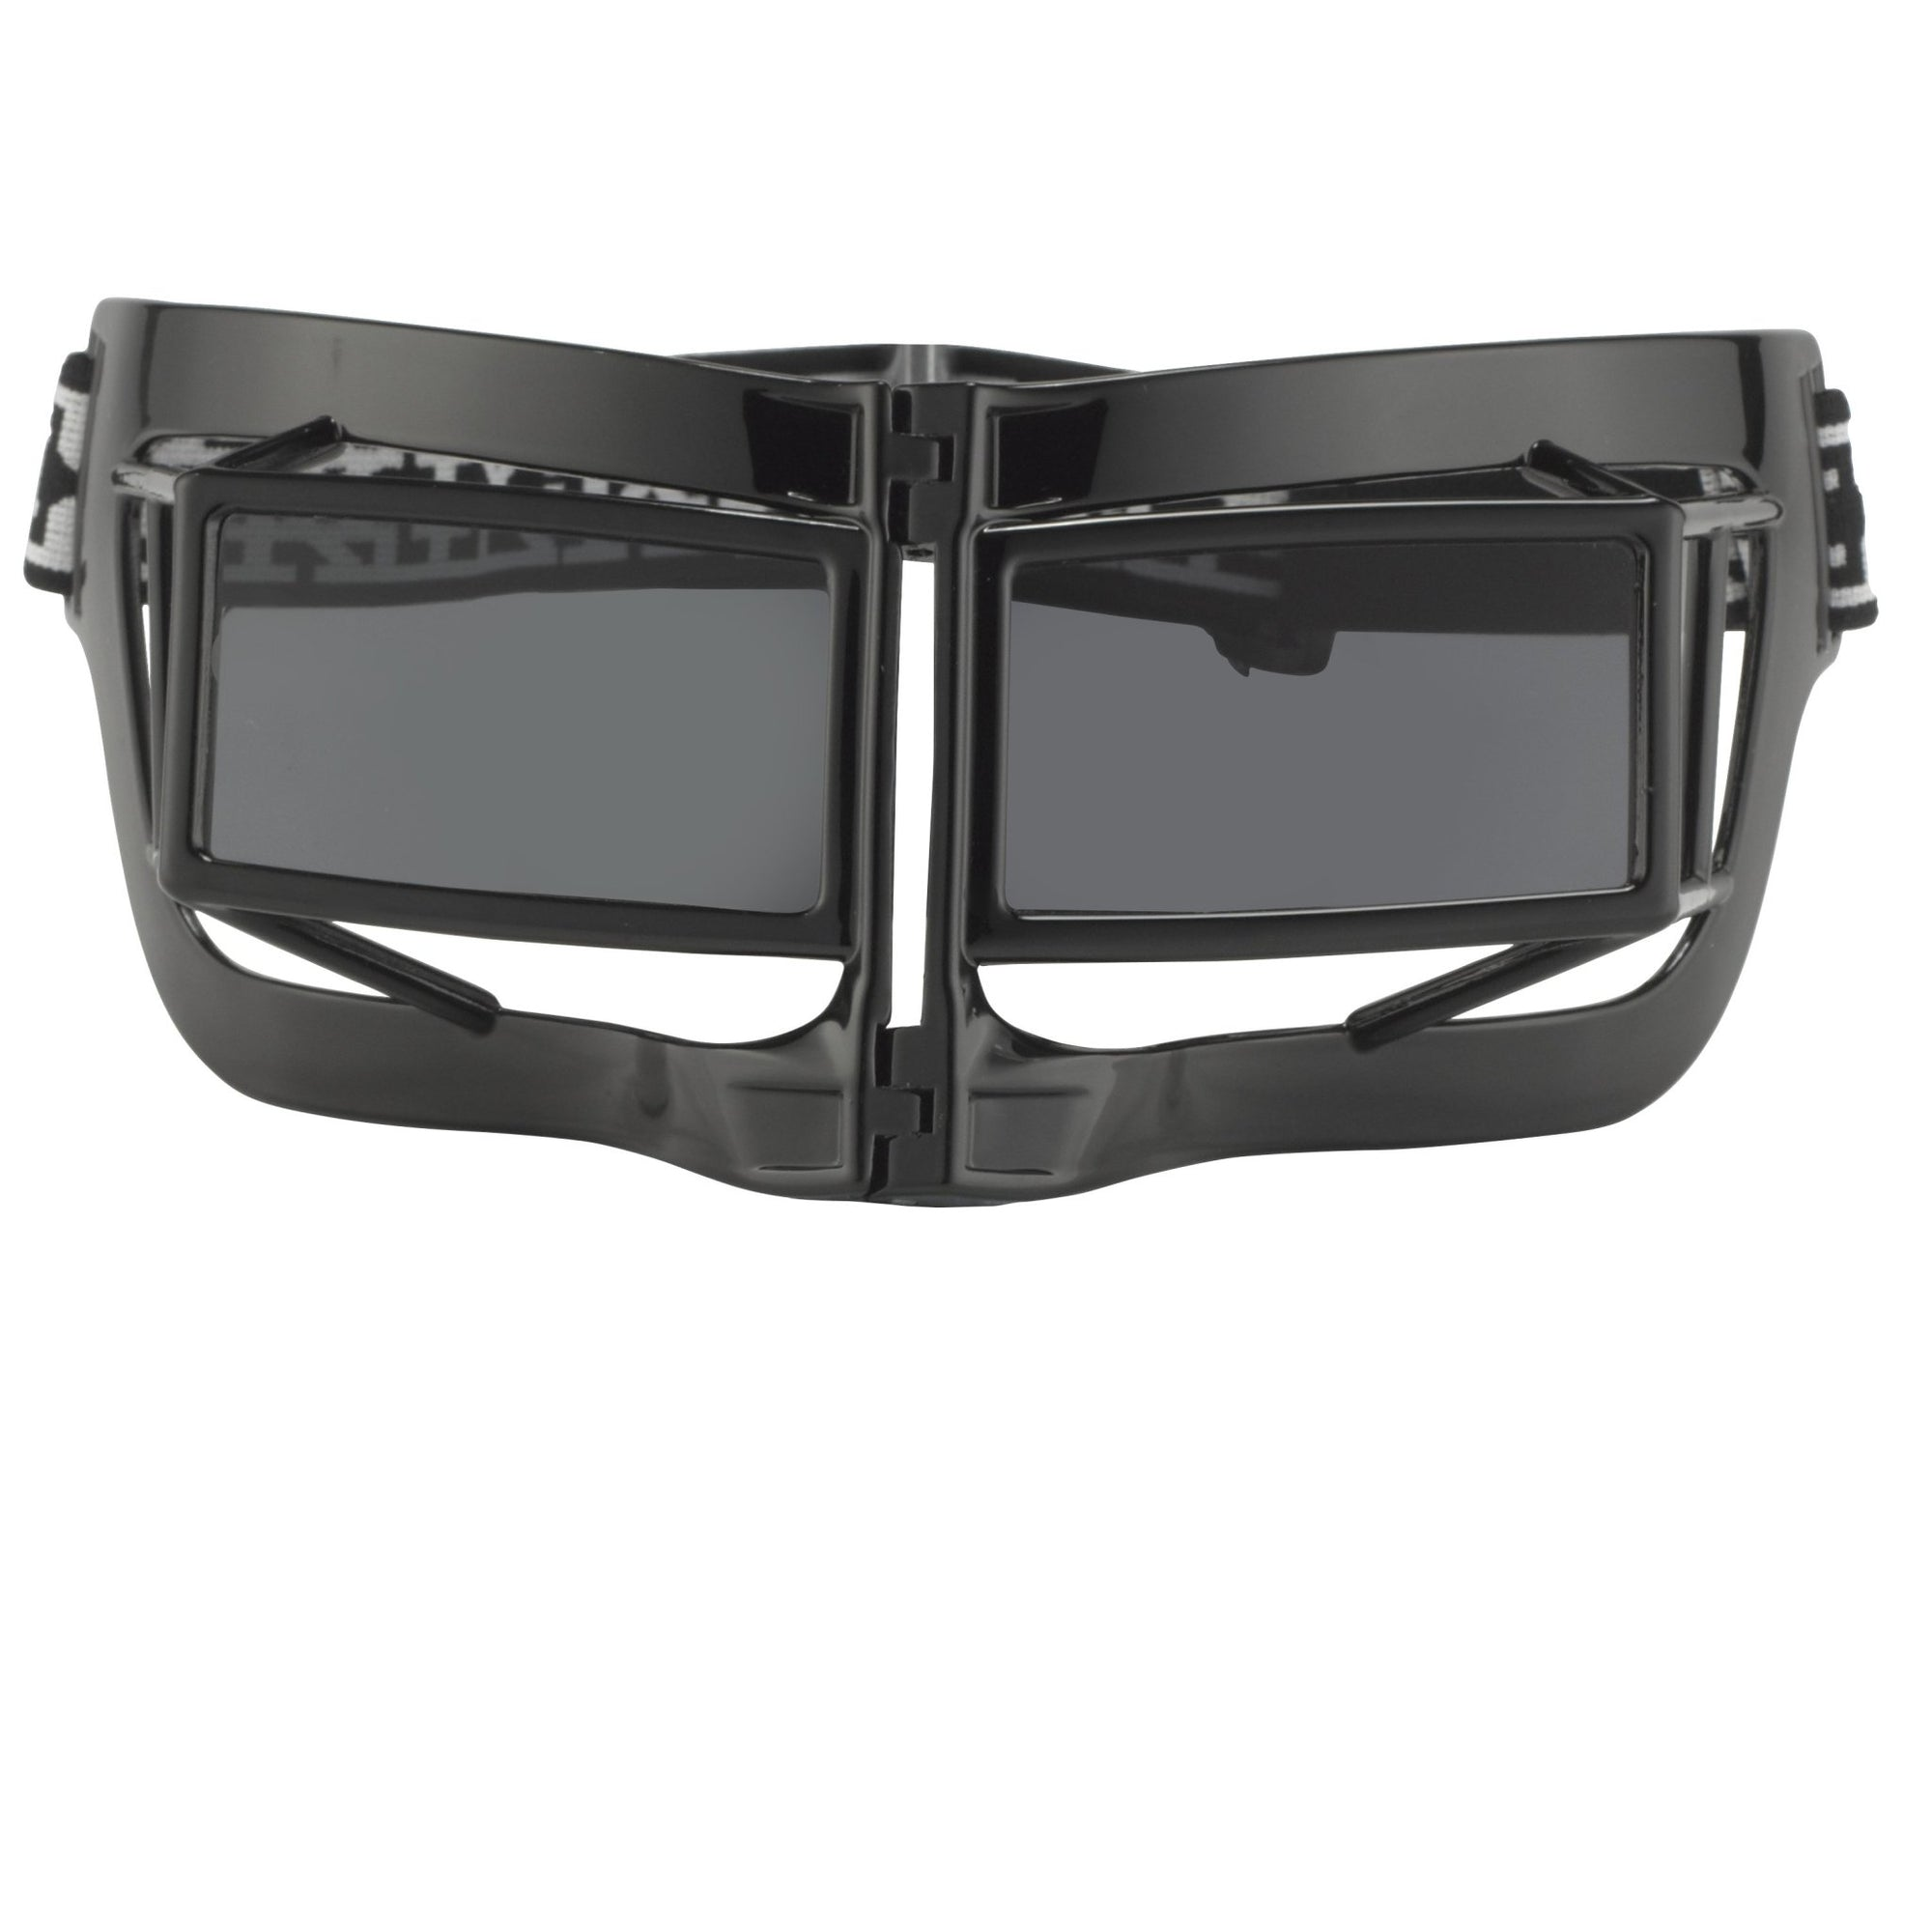 Kokon To Zai Sunglasses Shield Mask Black With Grey Category 3 Lenses KTZ9C1SUN - Watches & Crystals